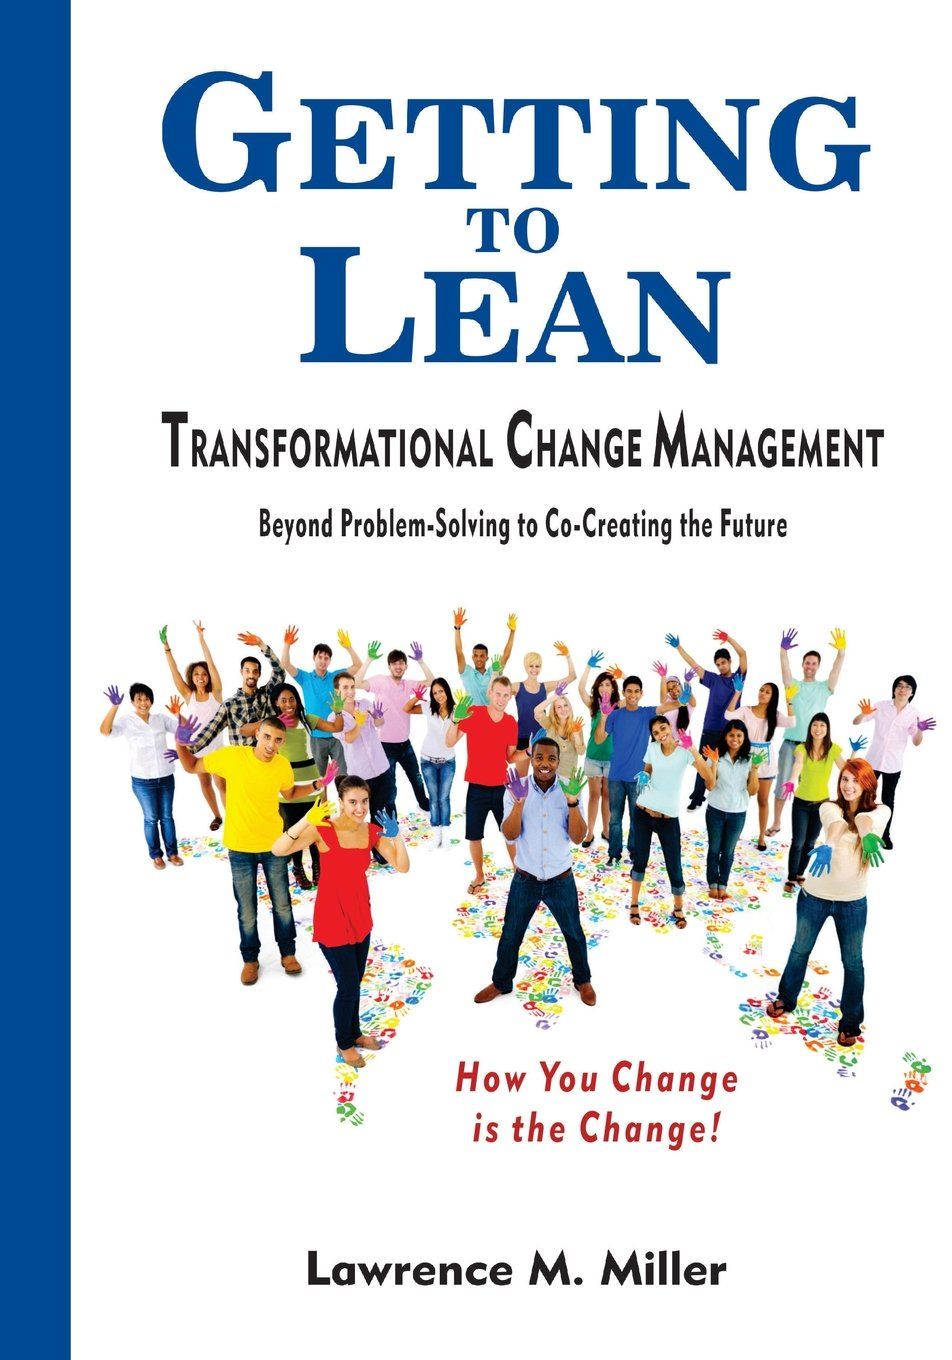 Getting to Lean - Transformational Change Management PDF